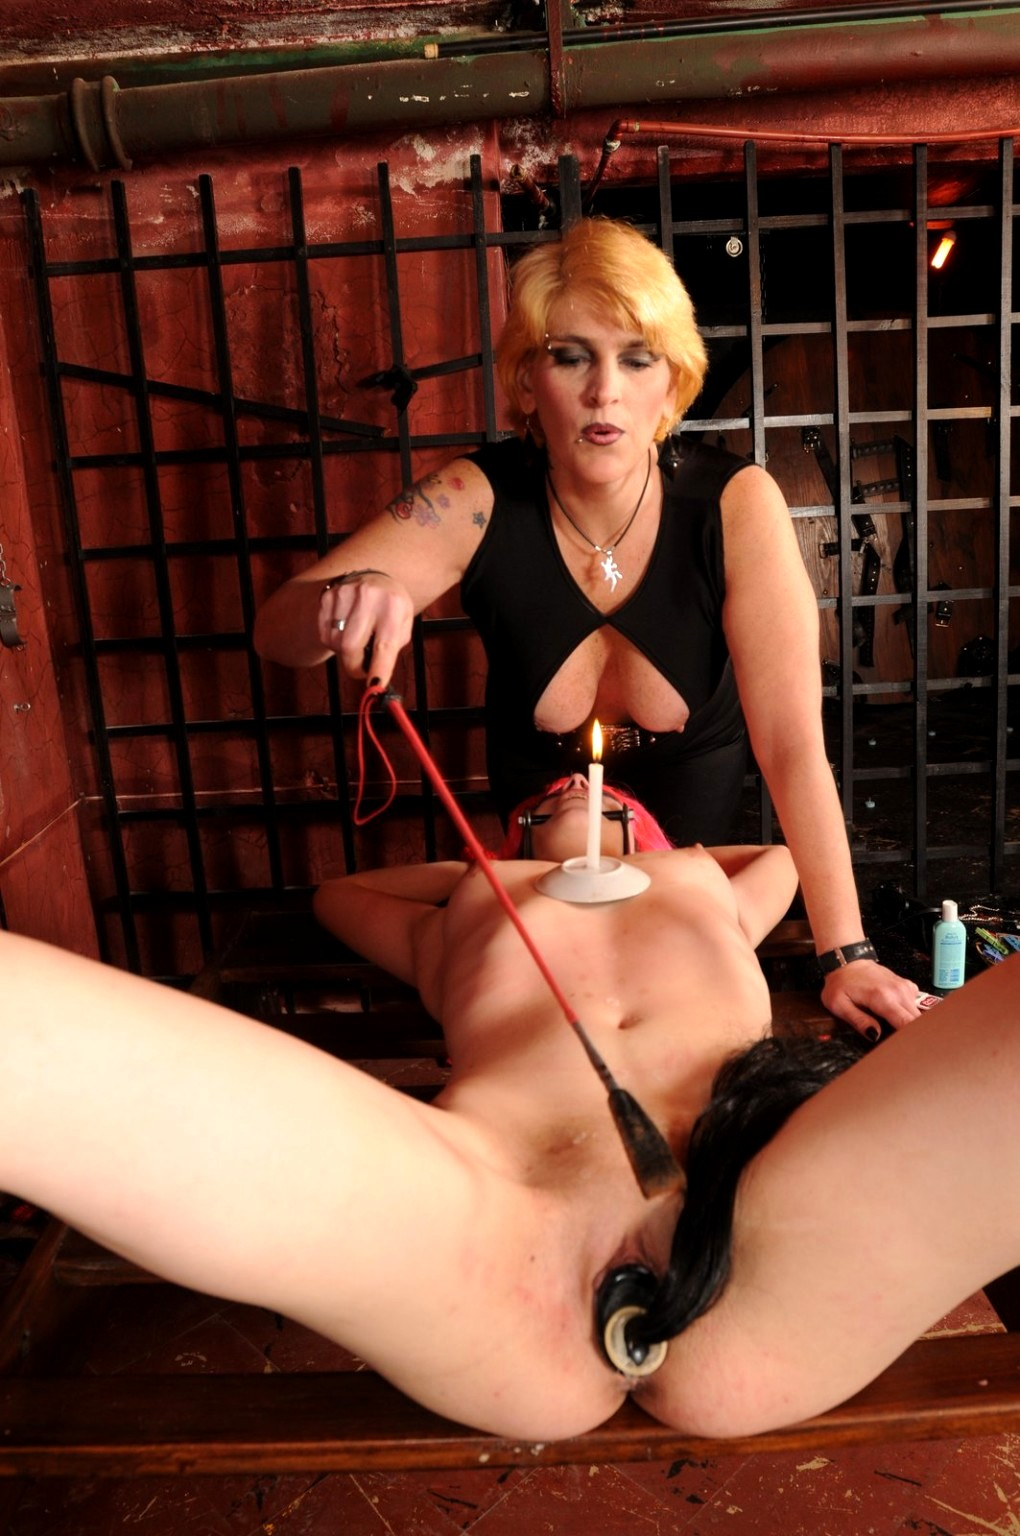 Whip Porn Pics, Housewife Sex Images, Wifes Porno